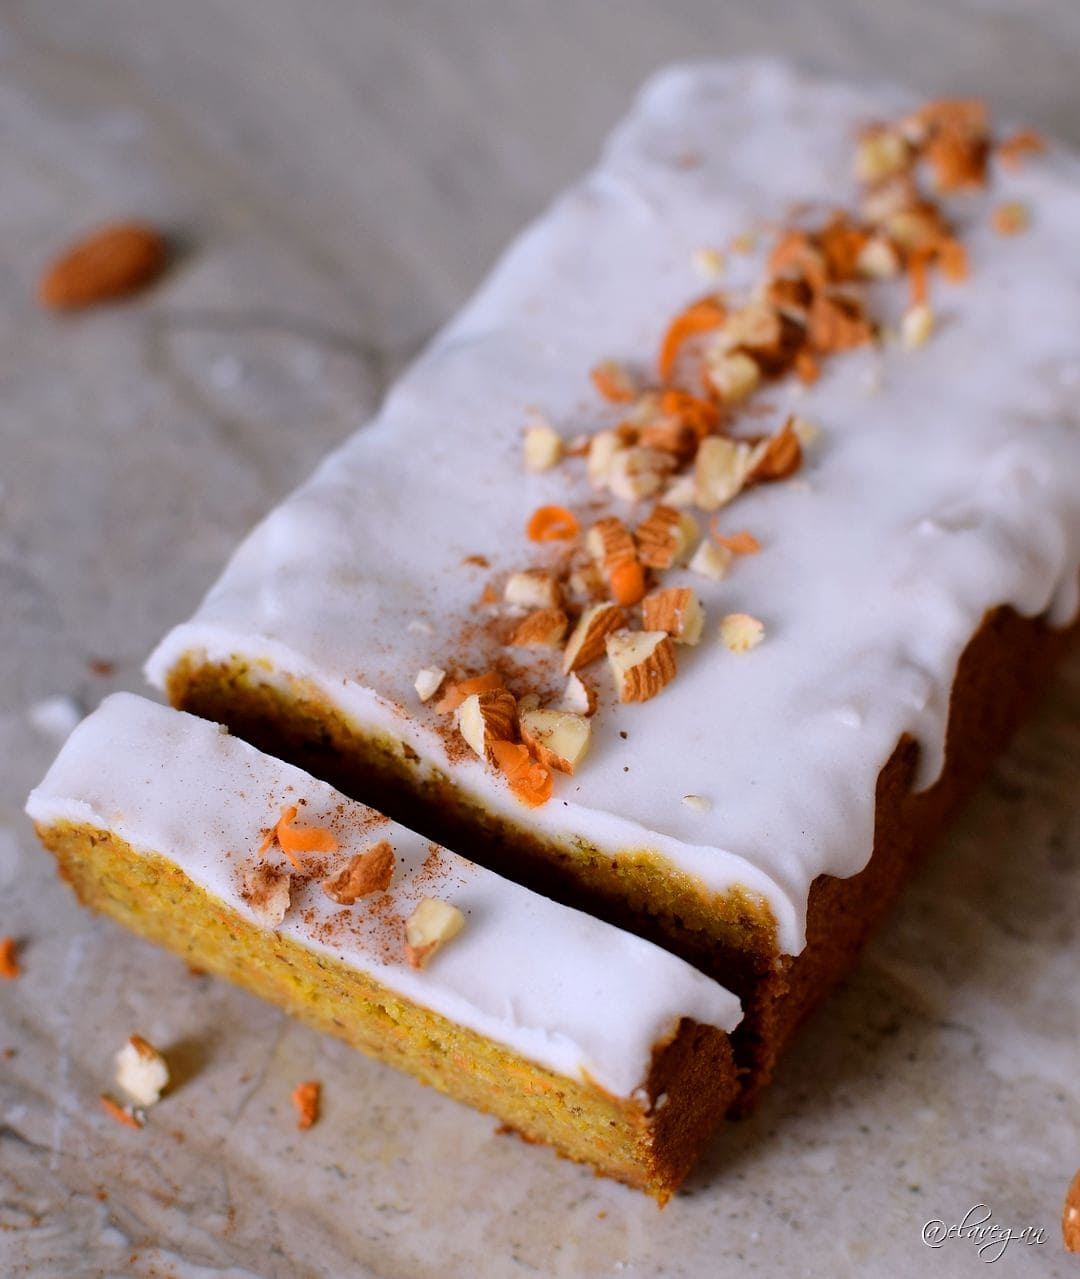 Vegan gluten free carrot cake which is a low-fat recipe with a refined sugar-free frosting. This low calorie vegan carrot cake is healthy, egg-free, dairy-free and easy to make